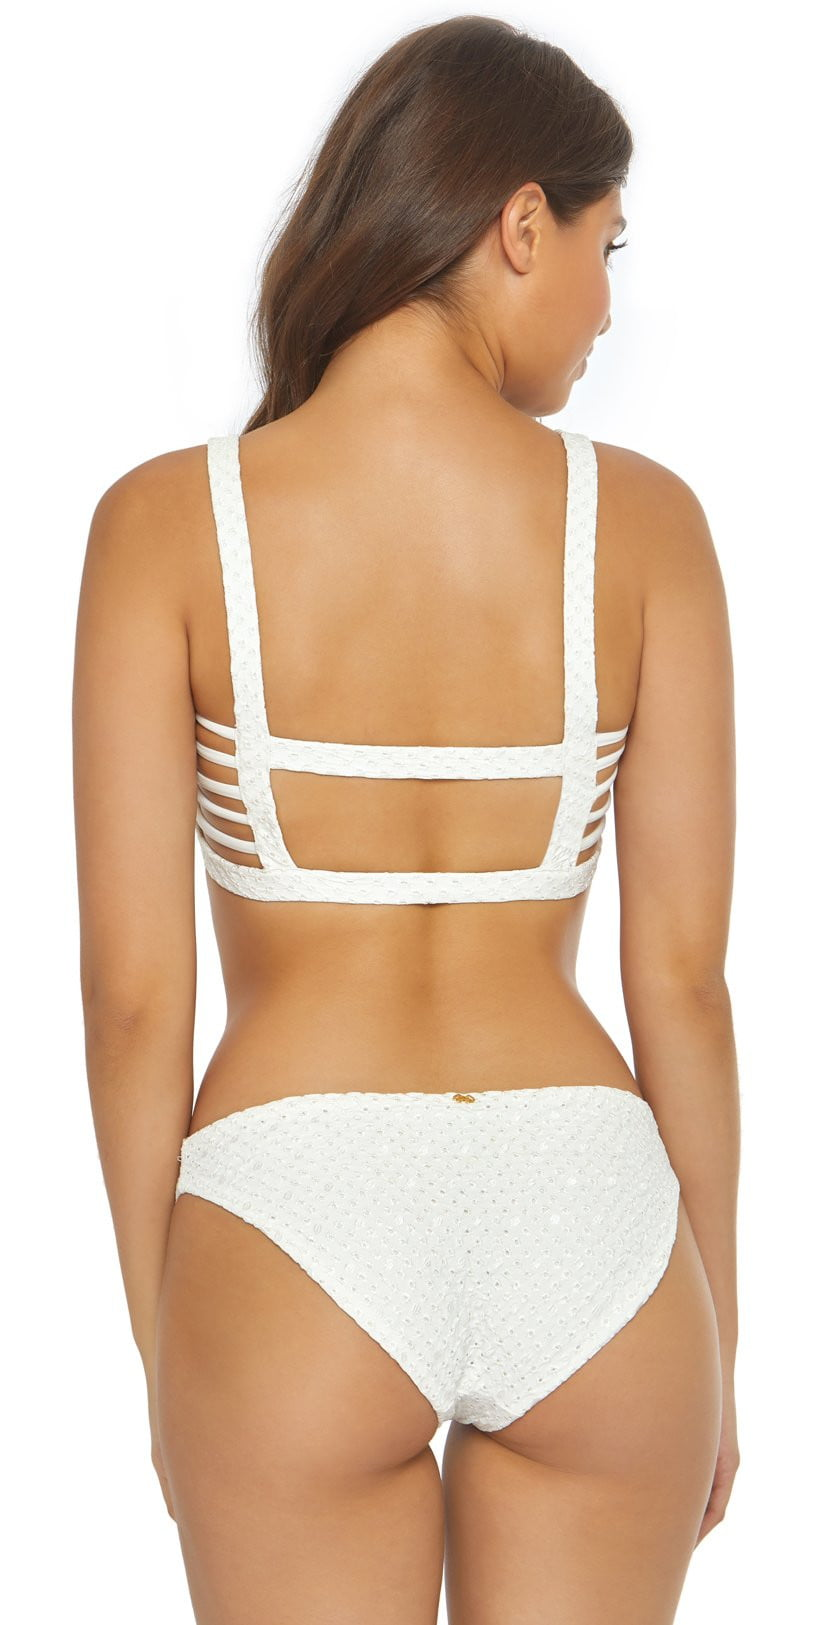 PilyQ Eyelet Caged Bikini Top EYE-305H White: